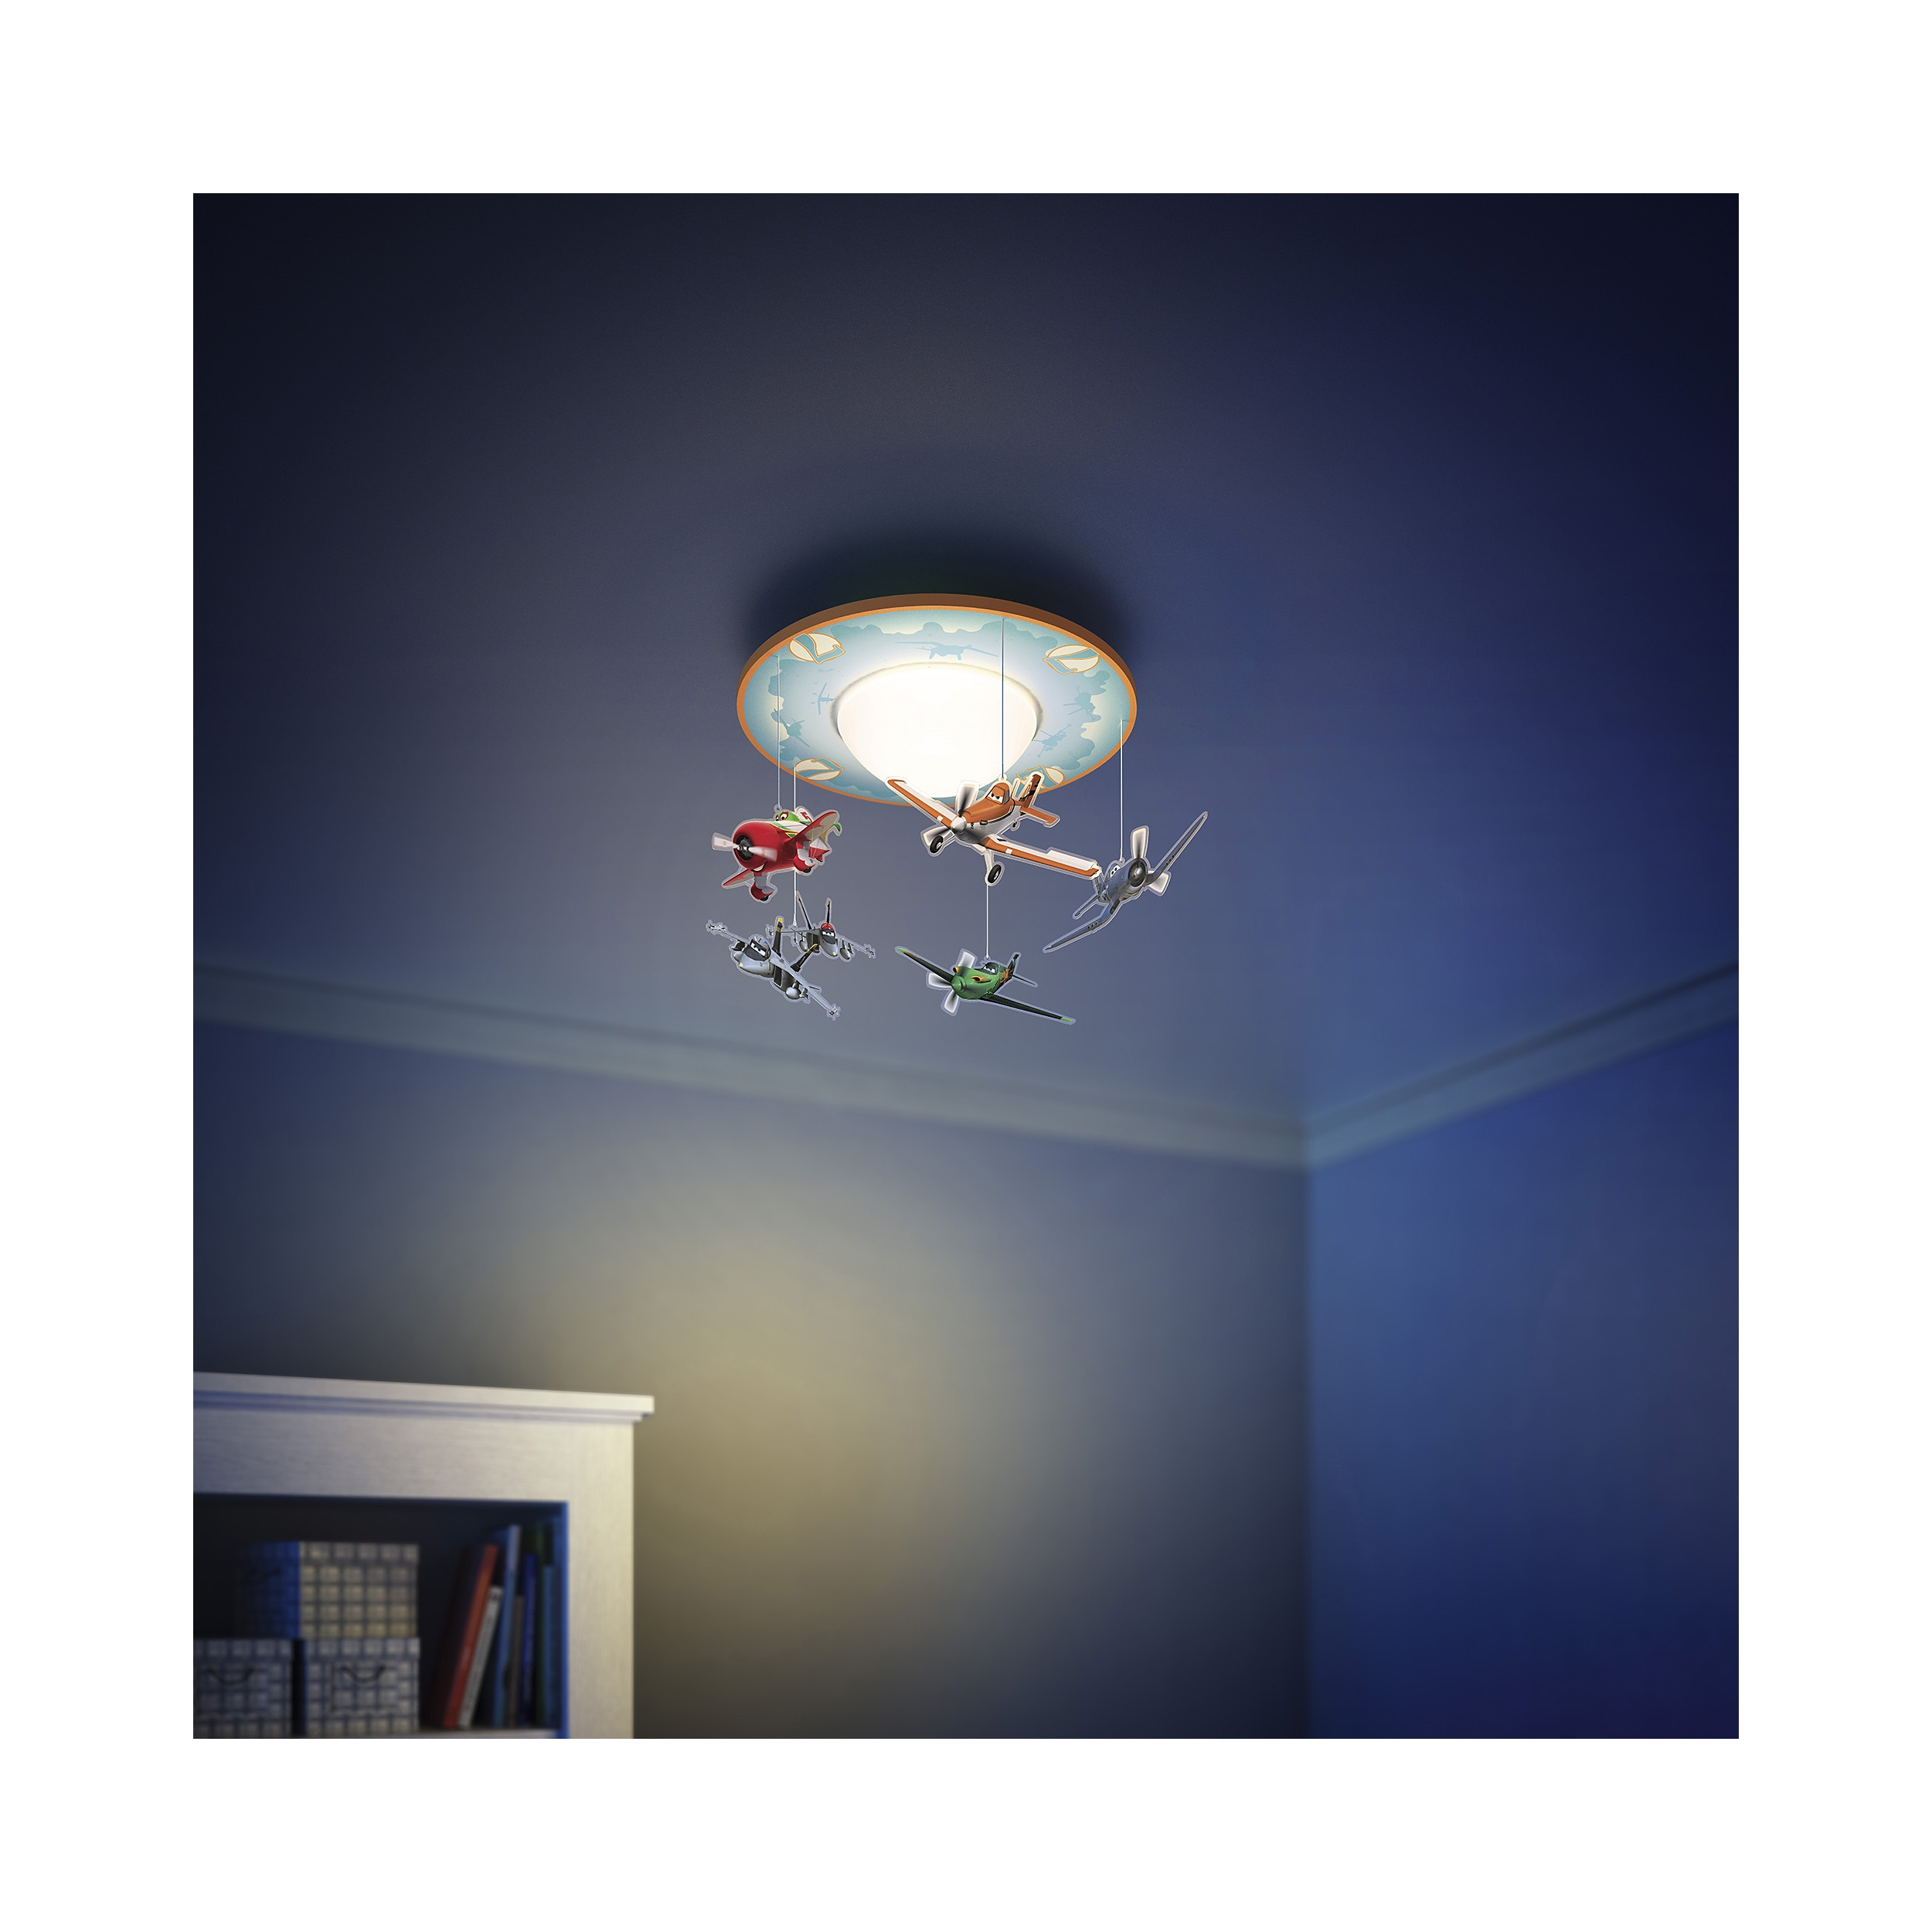 Led Lampe Kinderzimmer Philips Led Lampe Kinderzimmer Disney Deckenleuchte Planes